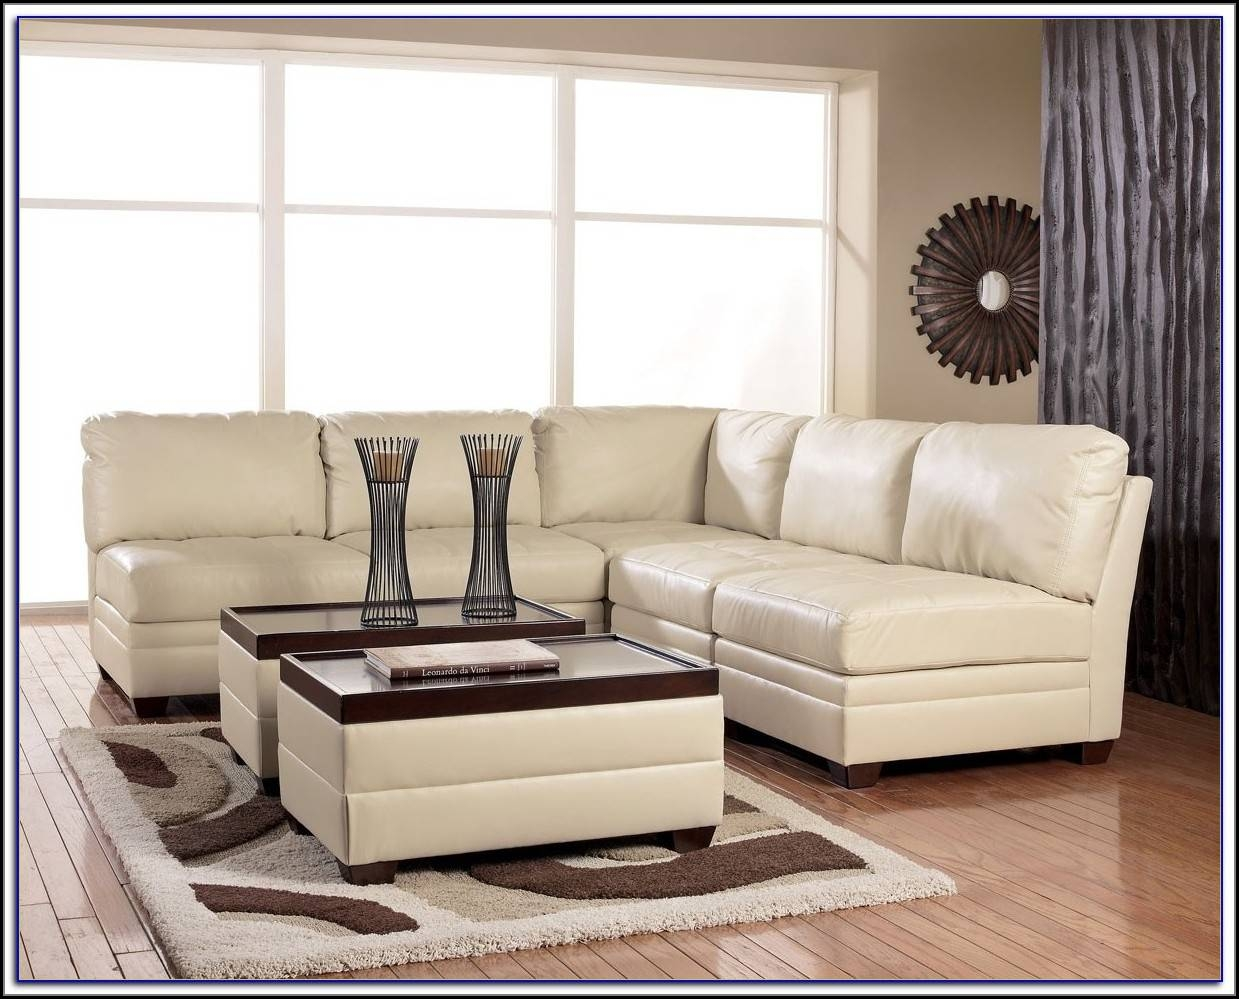 Decorating: Fill Your Living Room With Elegant Ashley Furniture within Elegant Sectional Sofas (Image 6 of 30)